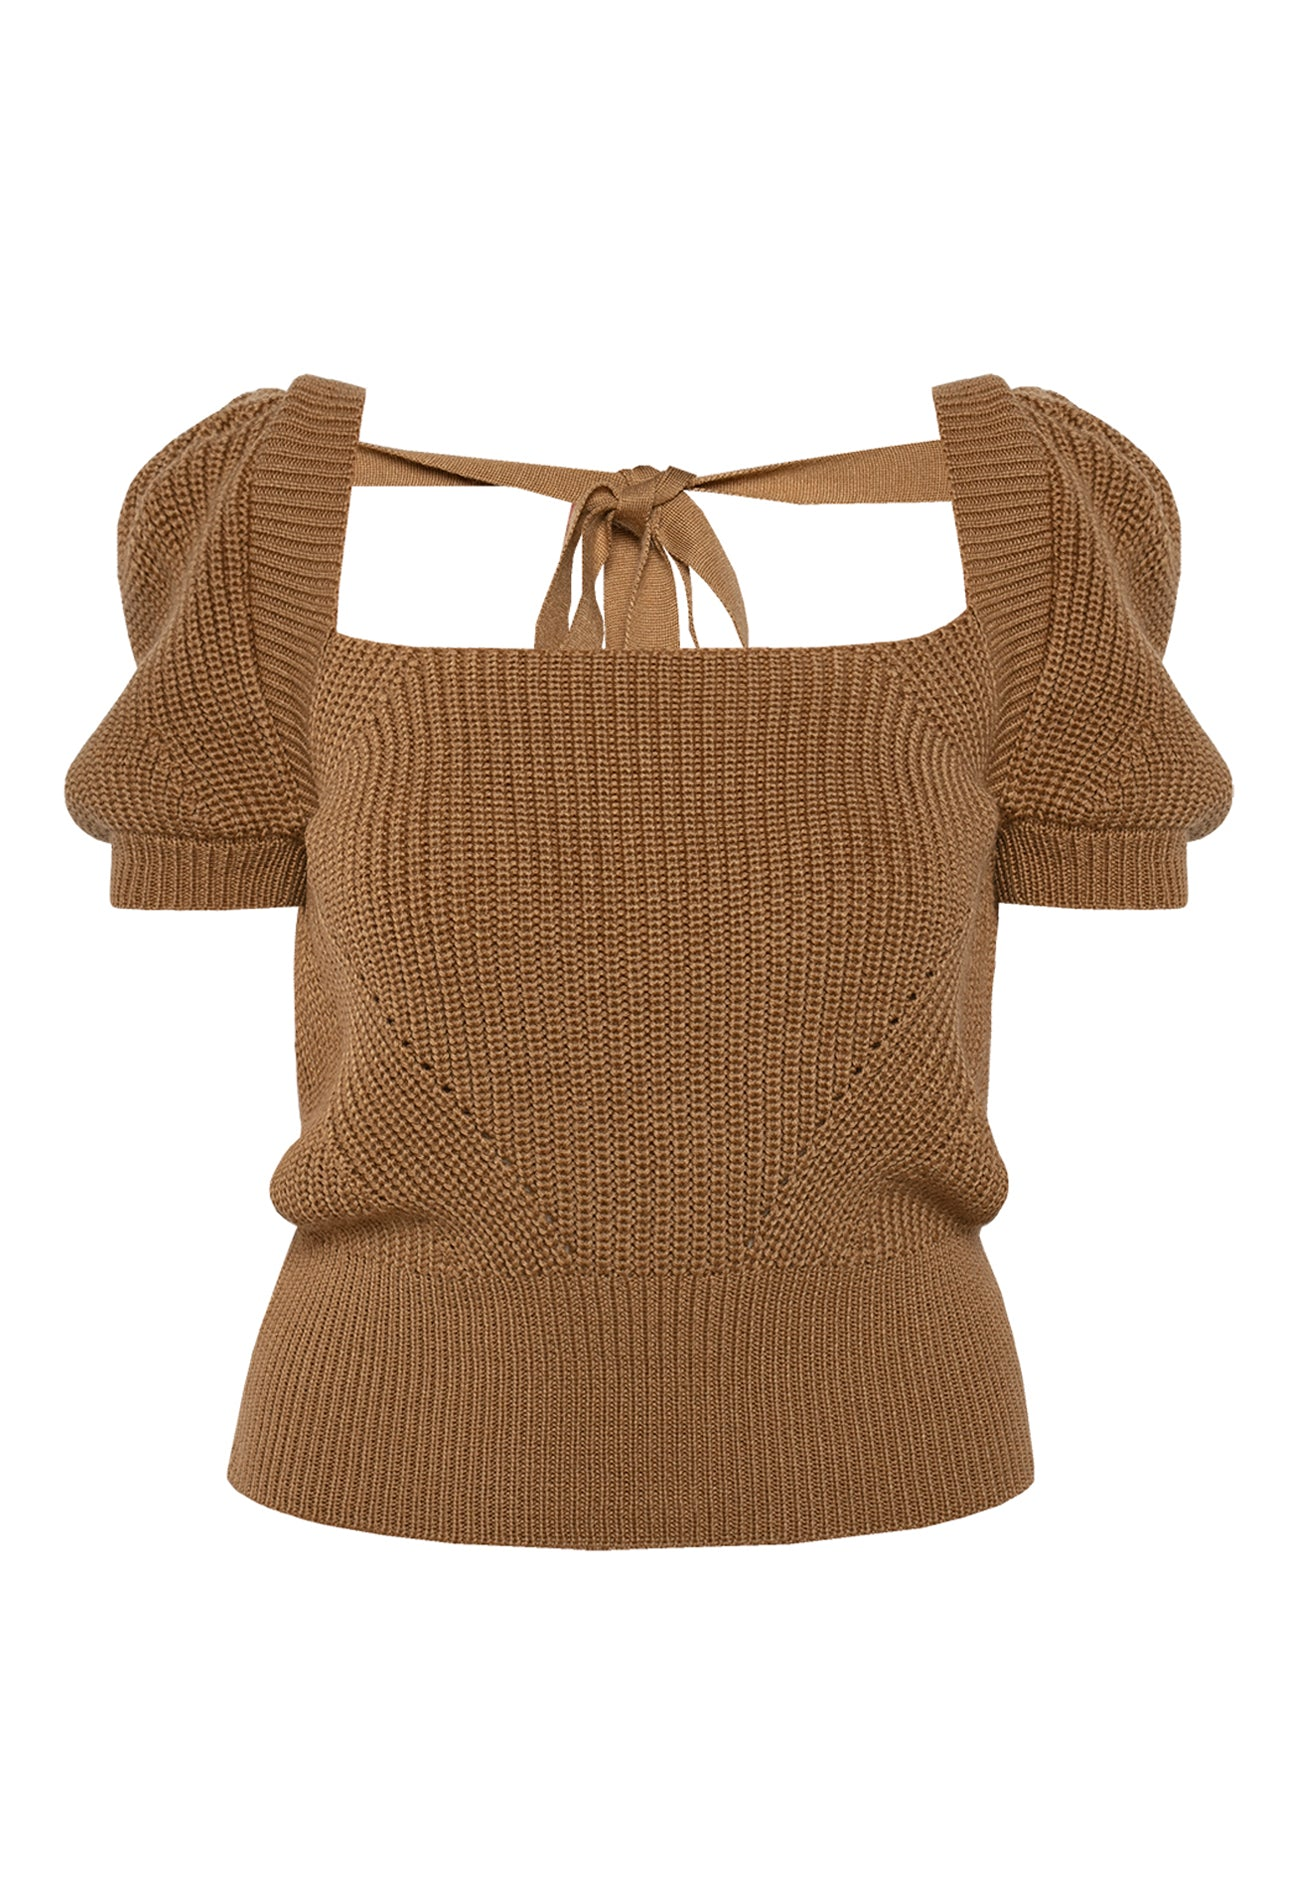 Vera sweater, front view